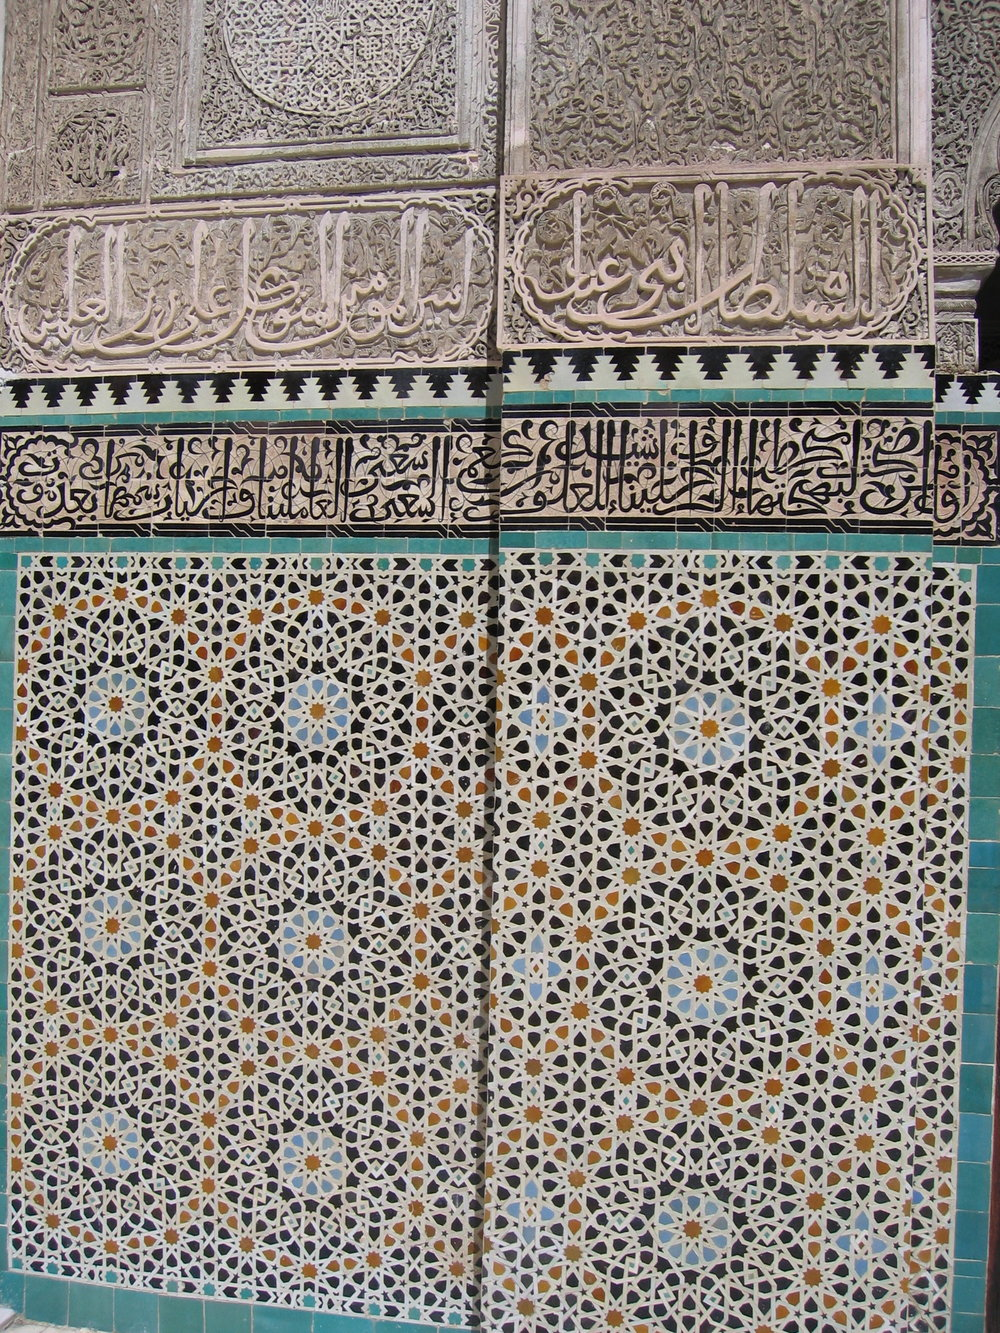 the mosaic tile pattern that inspired Salma's ring